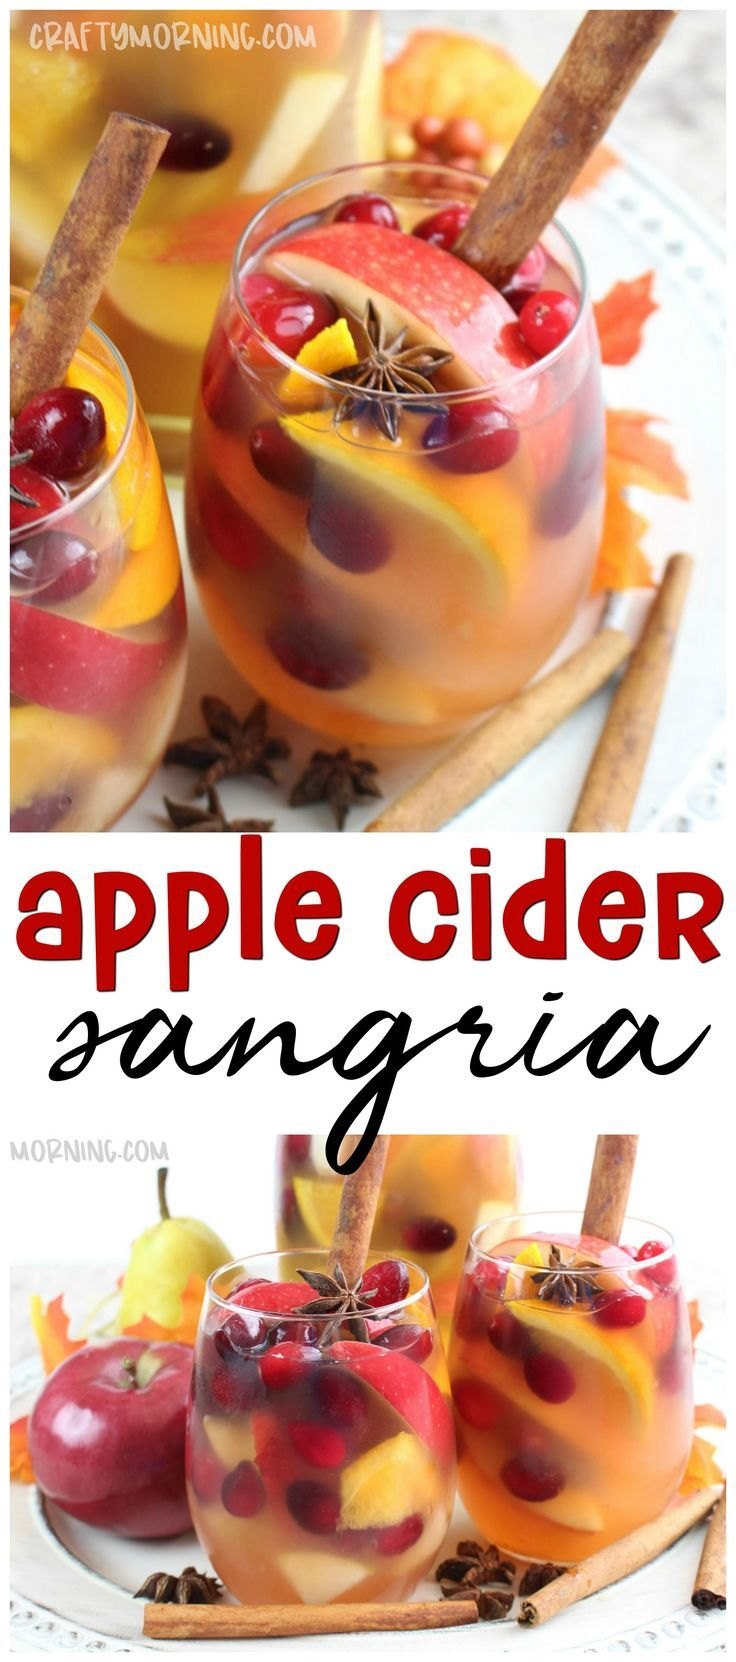 Apple Cider Sangria Recipe - Crafty Morning